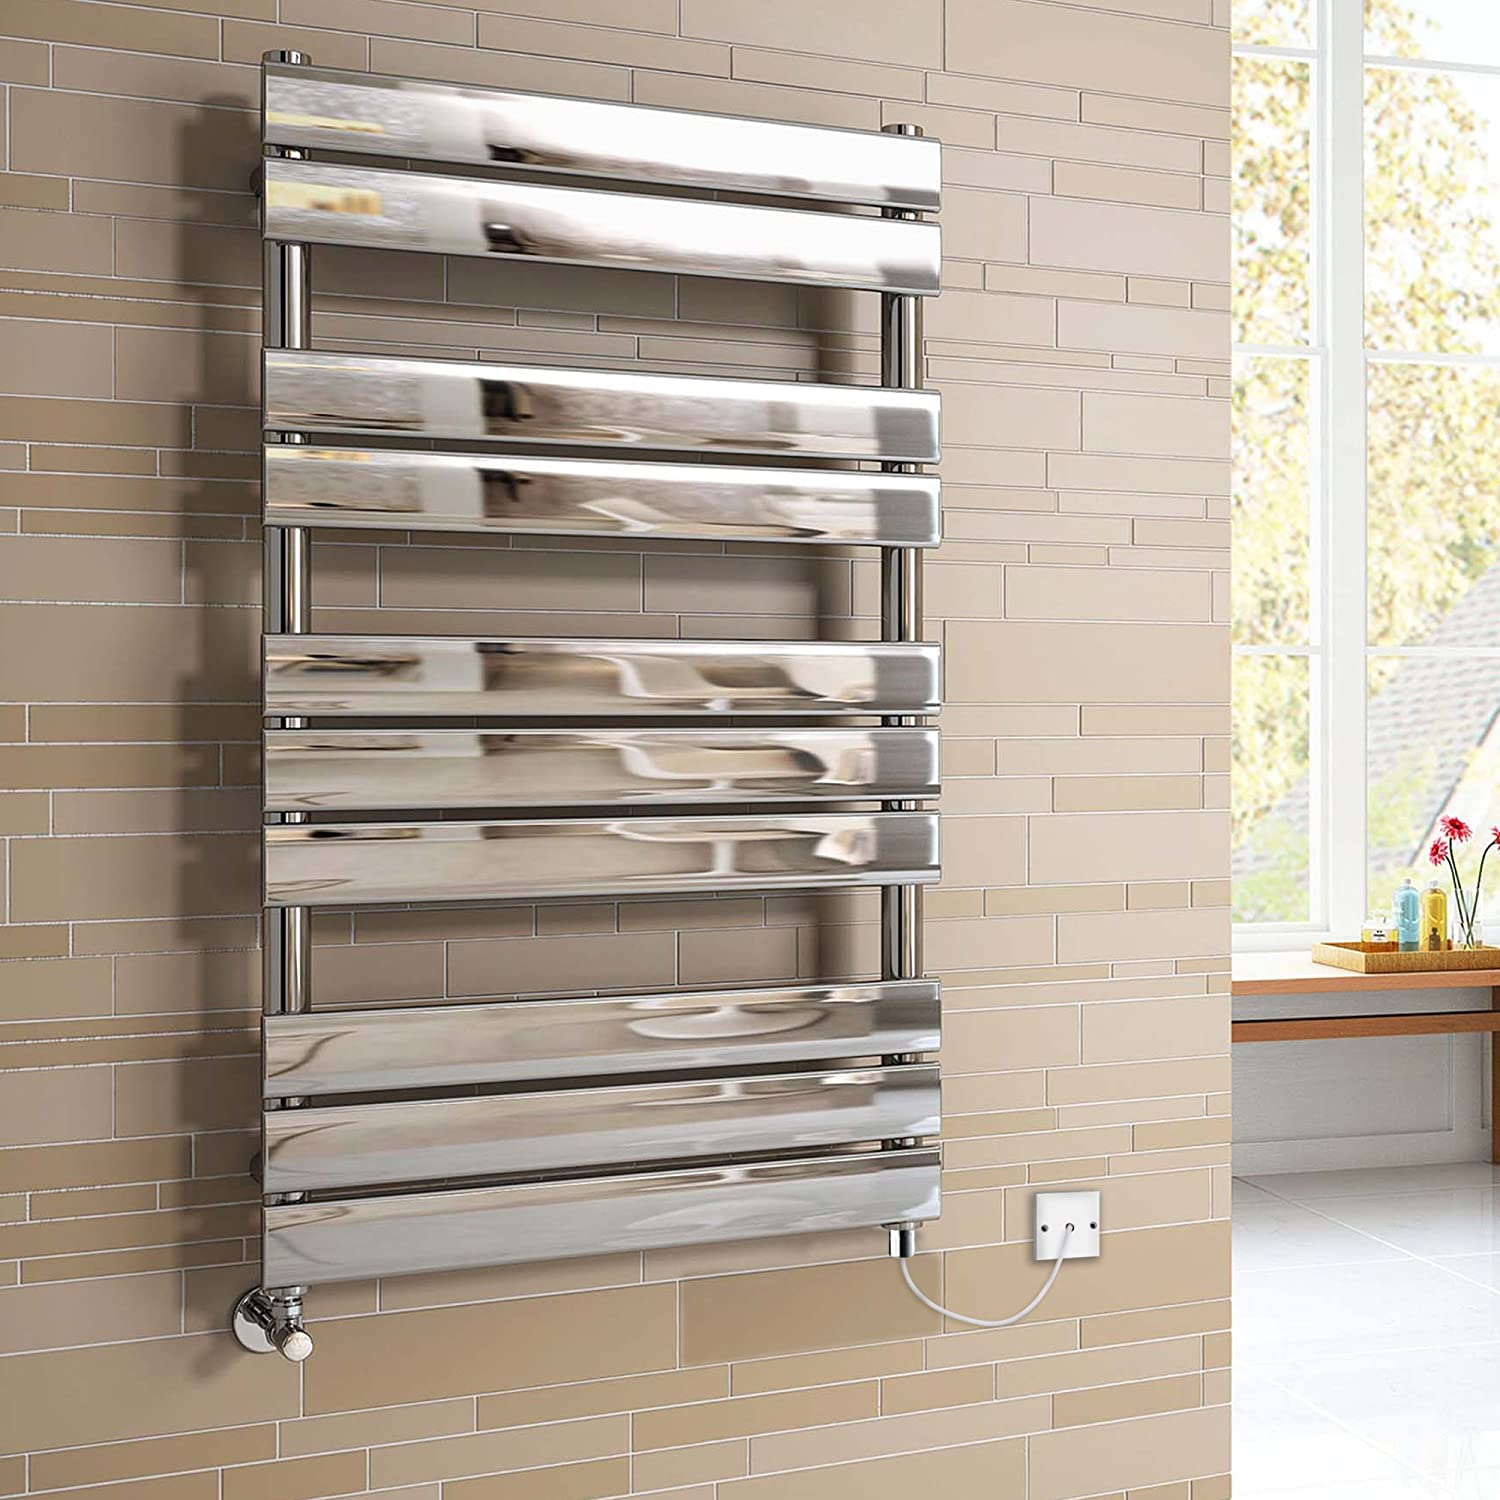 650x400 mm Electric Chrome Designer Flat Panel Towel Rail Radiator Heated Bathroom iBathUK